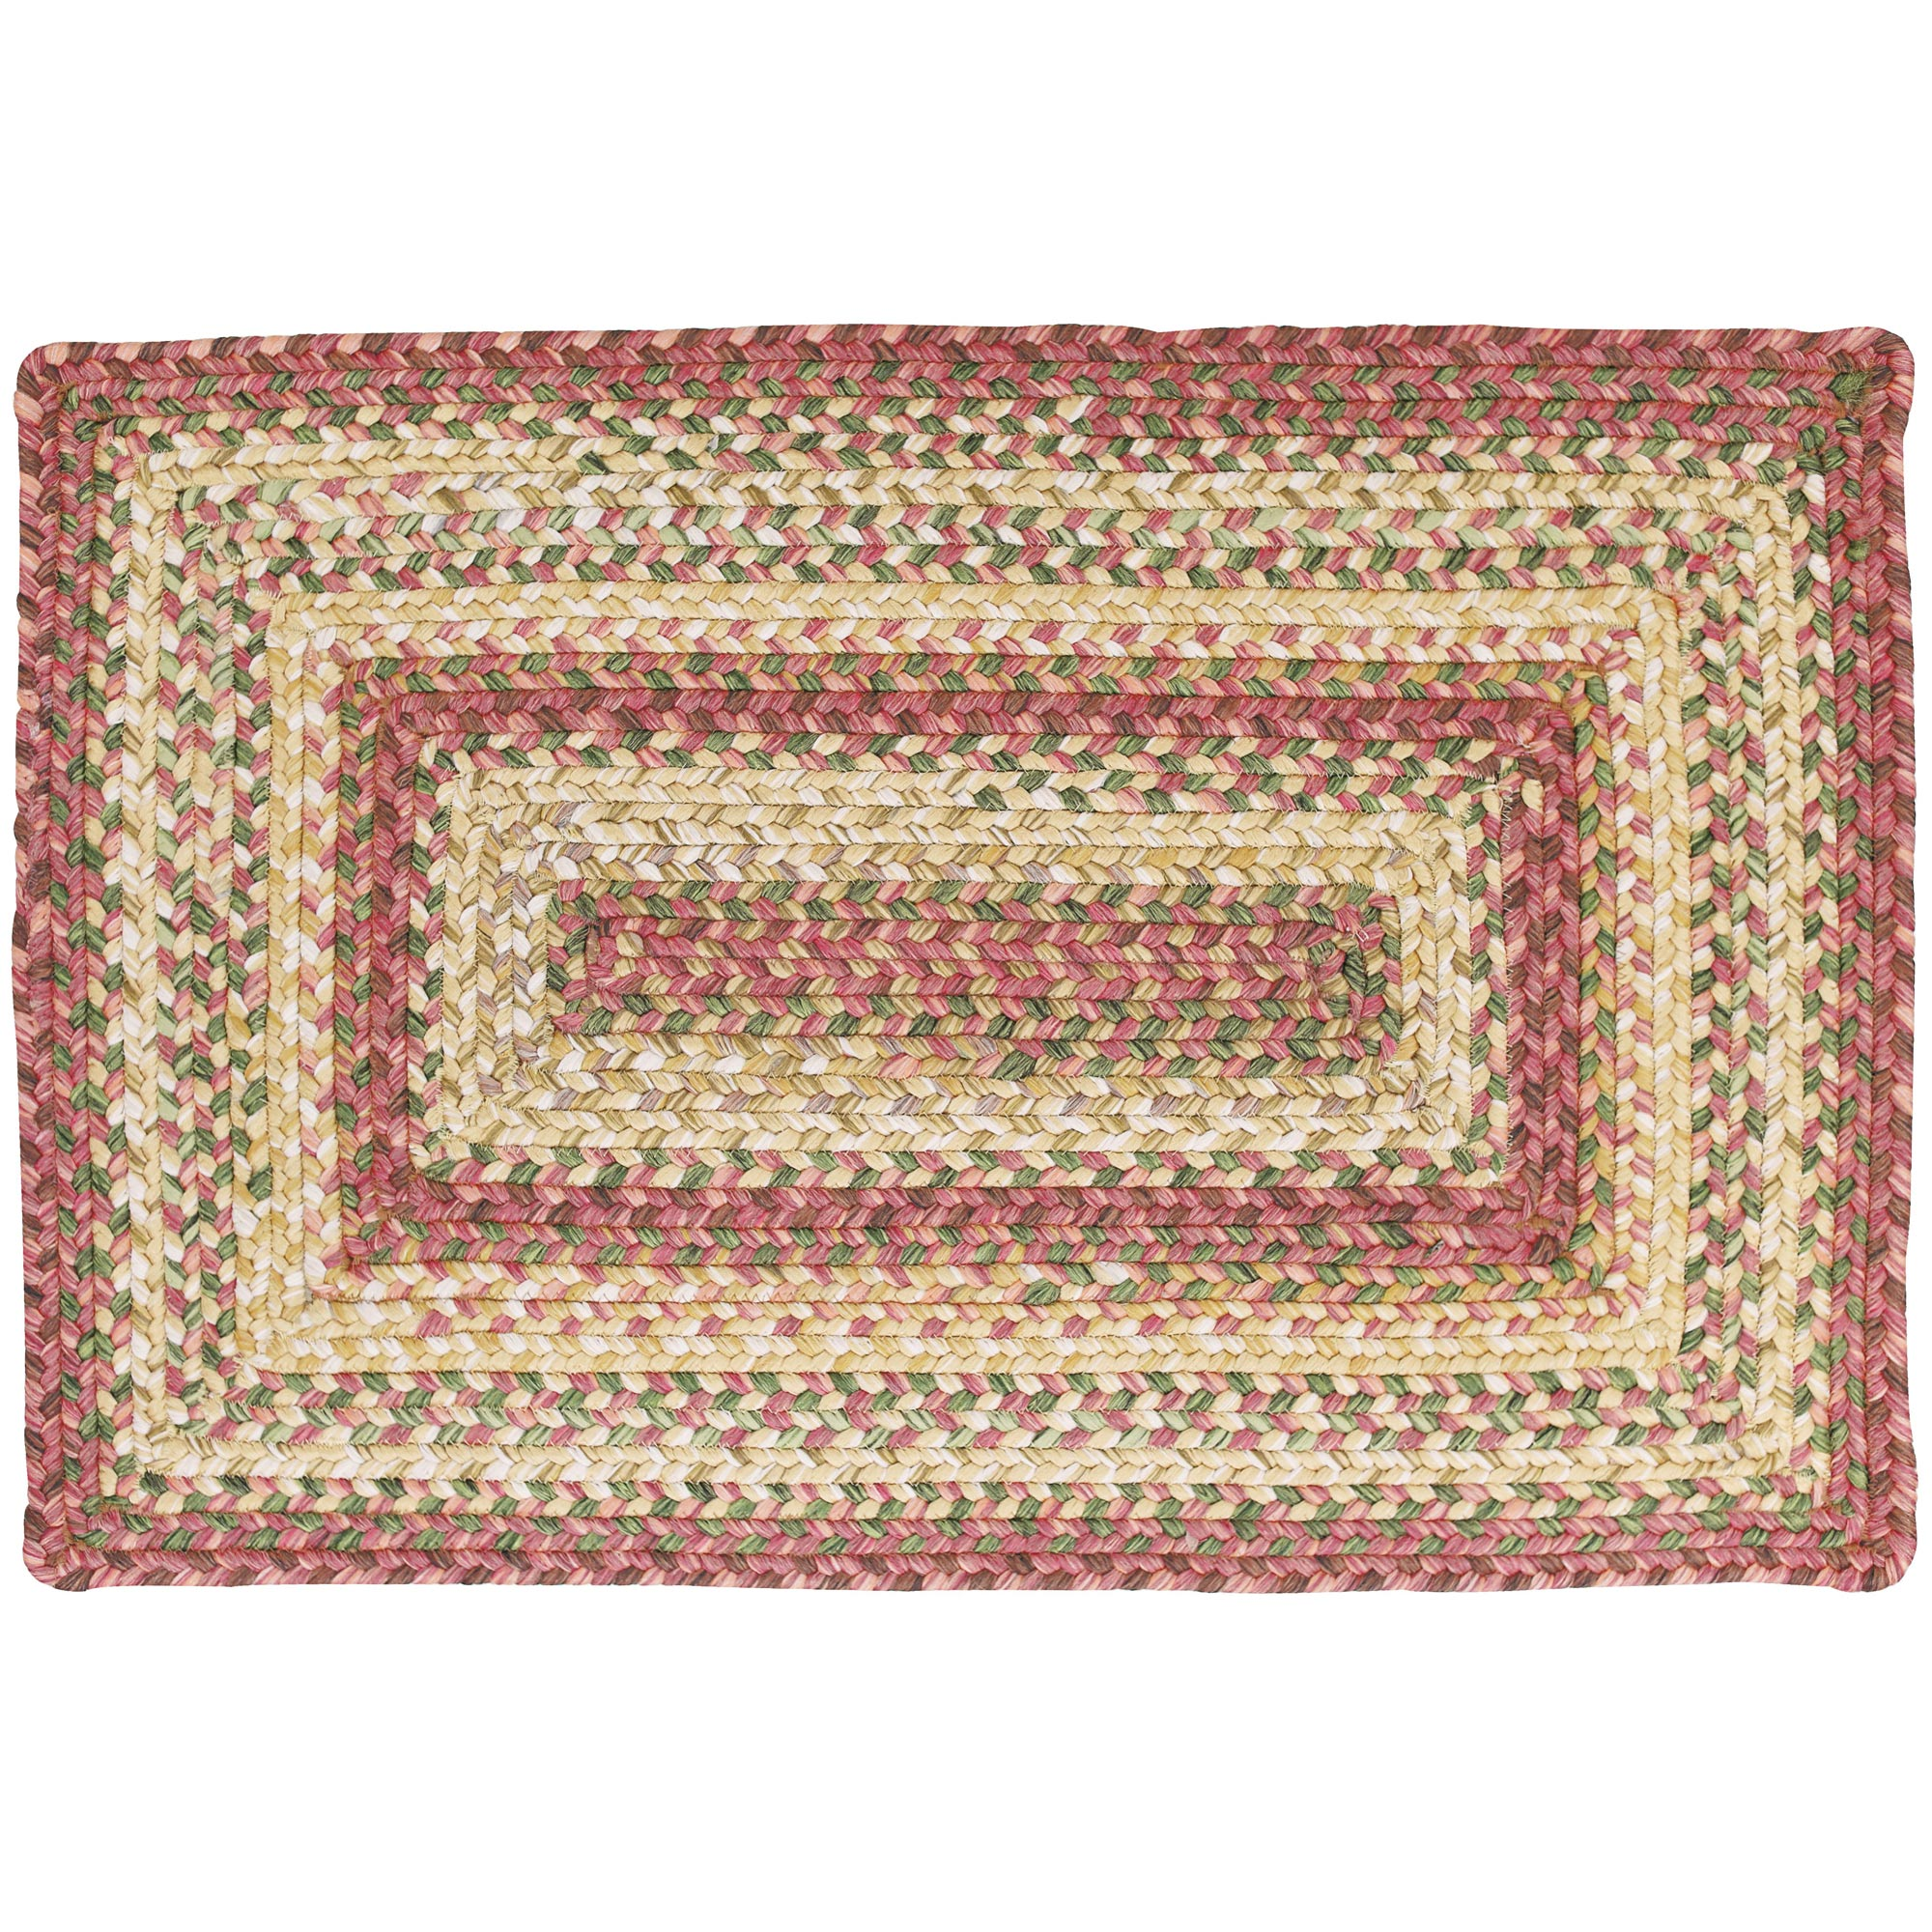 Washable Primitive Rugs: Braided Area Rugs Primitive Country Barcelona Homespice 20